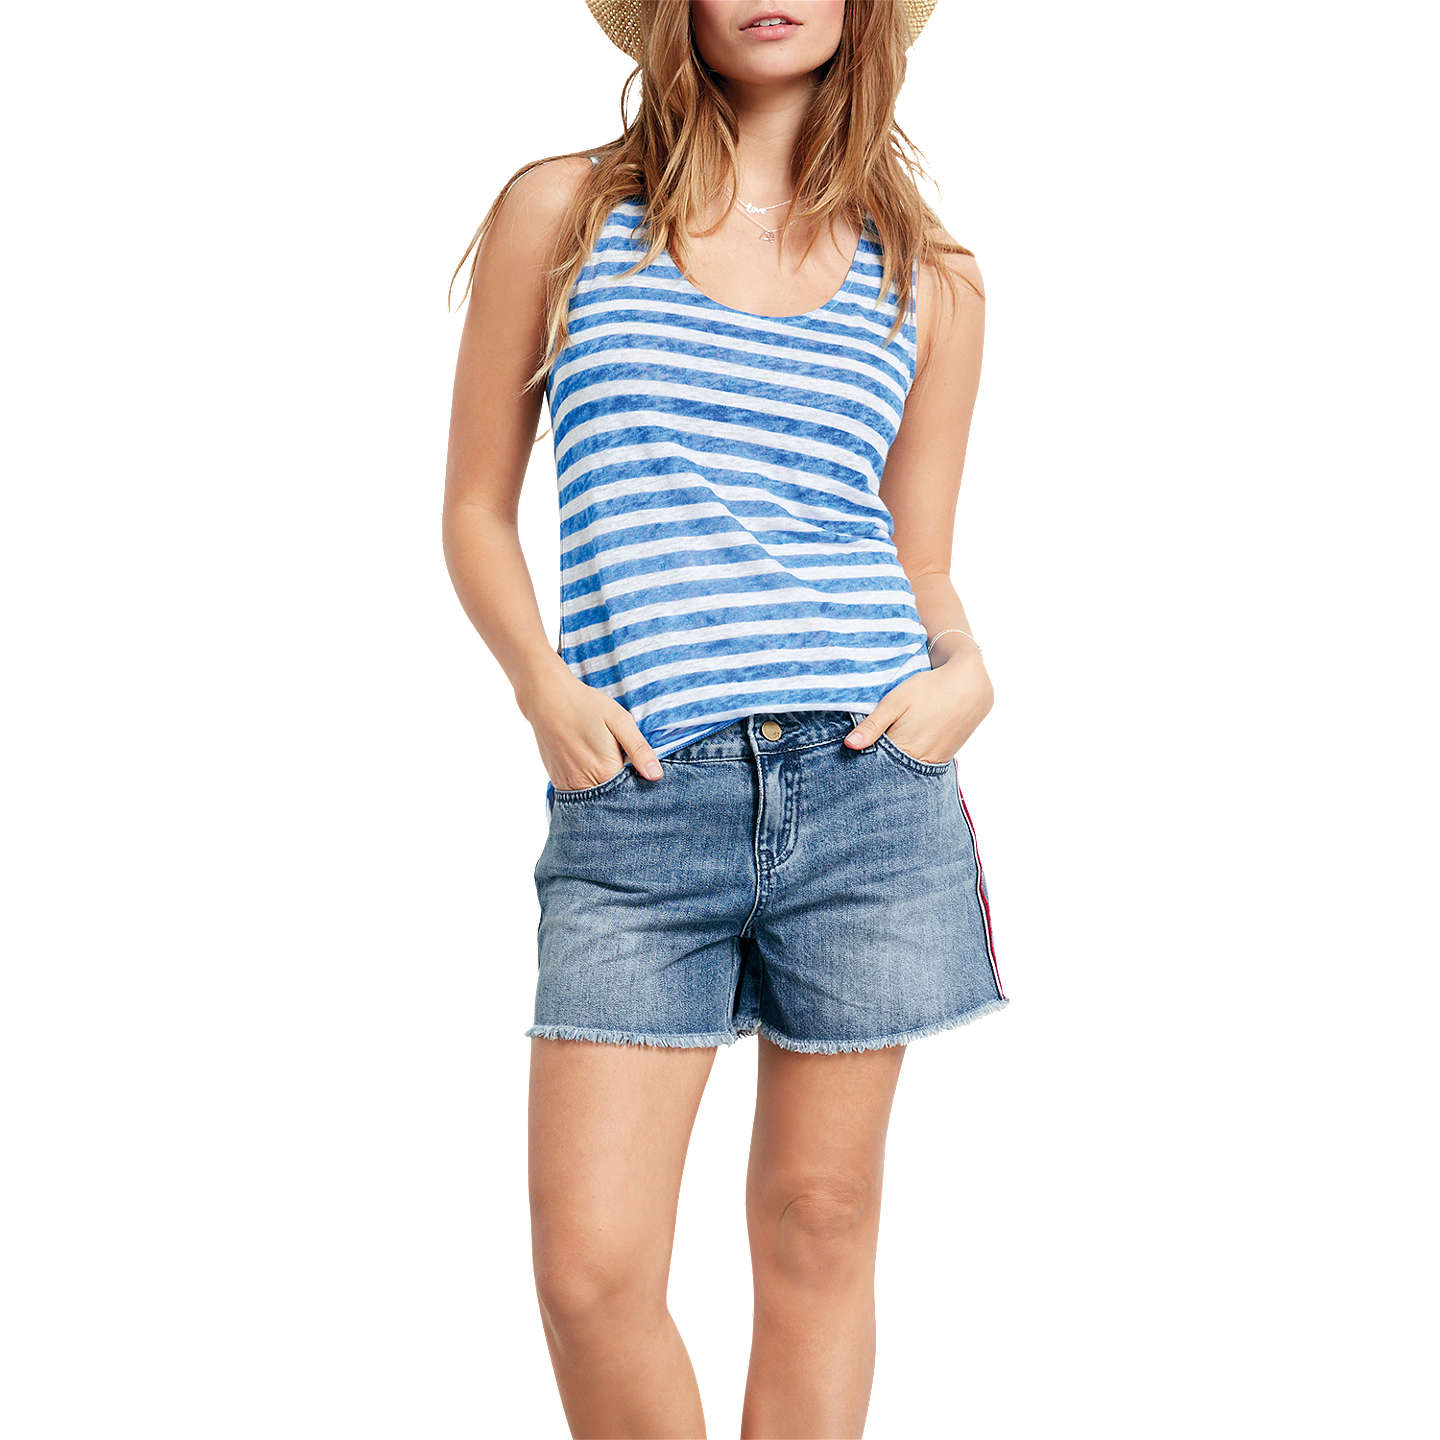 Hush Puppies Striped Jersey Vest Top Cheap Footlocker Cheapest Sale Online Discount How Much Supply Low Cost B89QZT93u